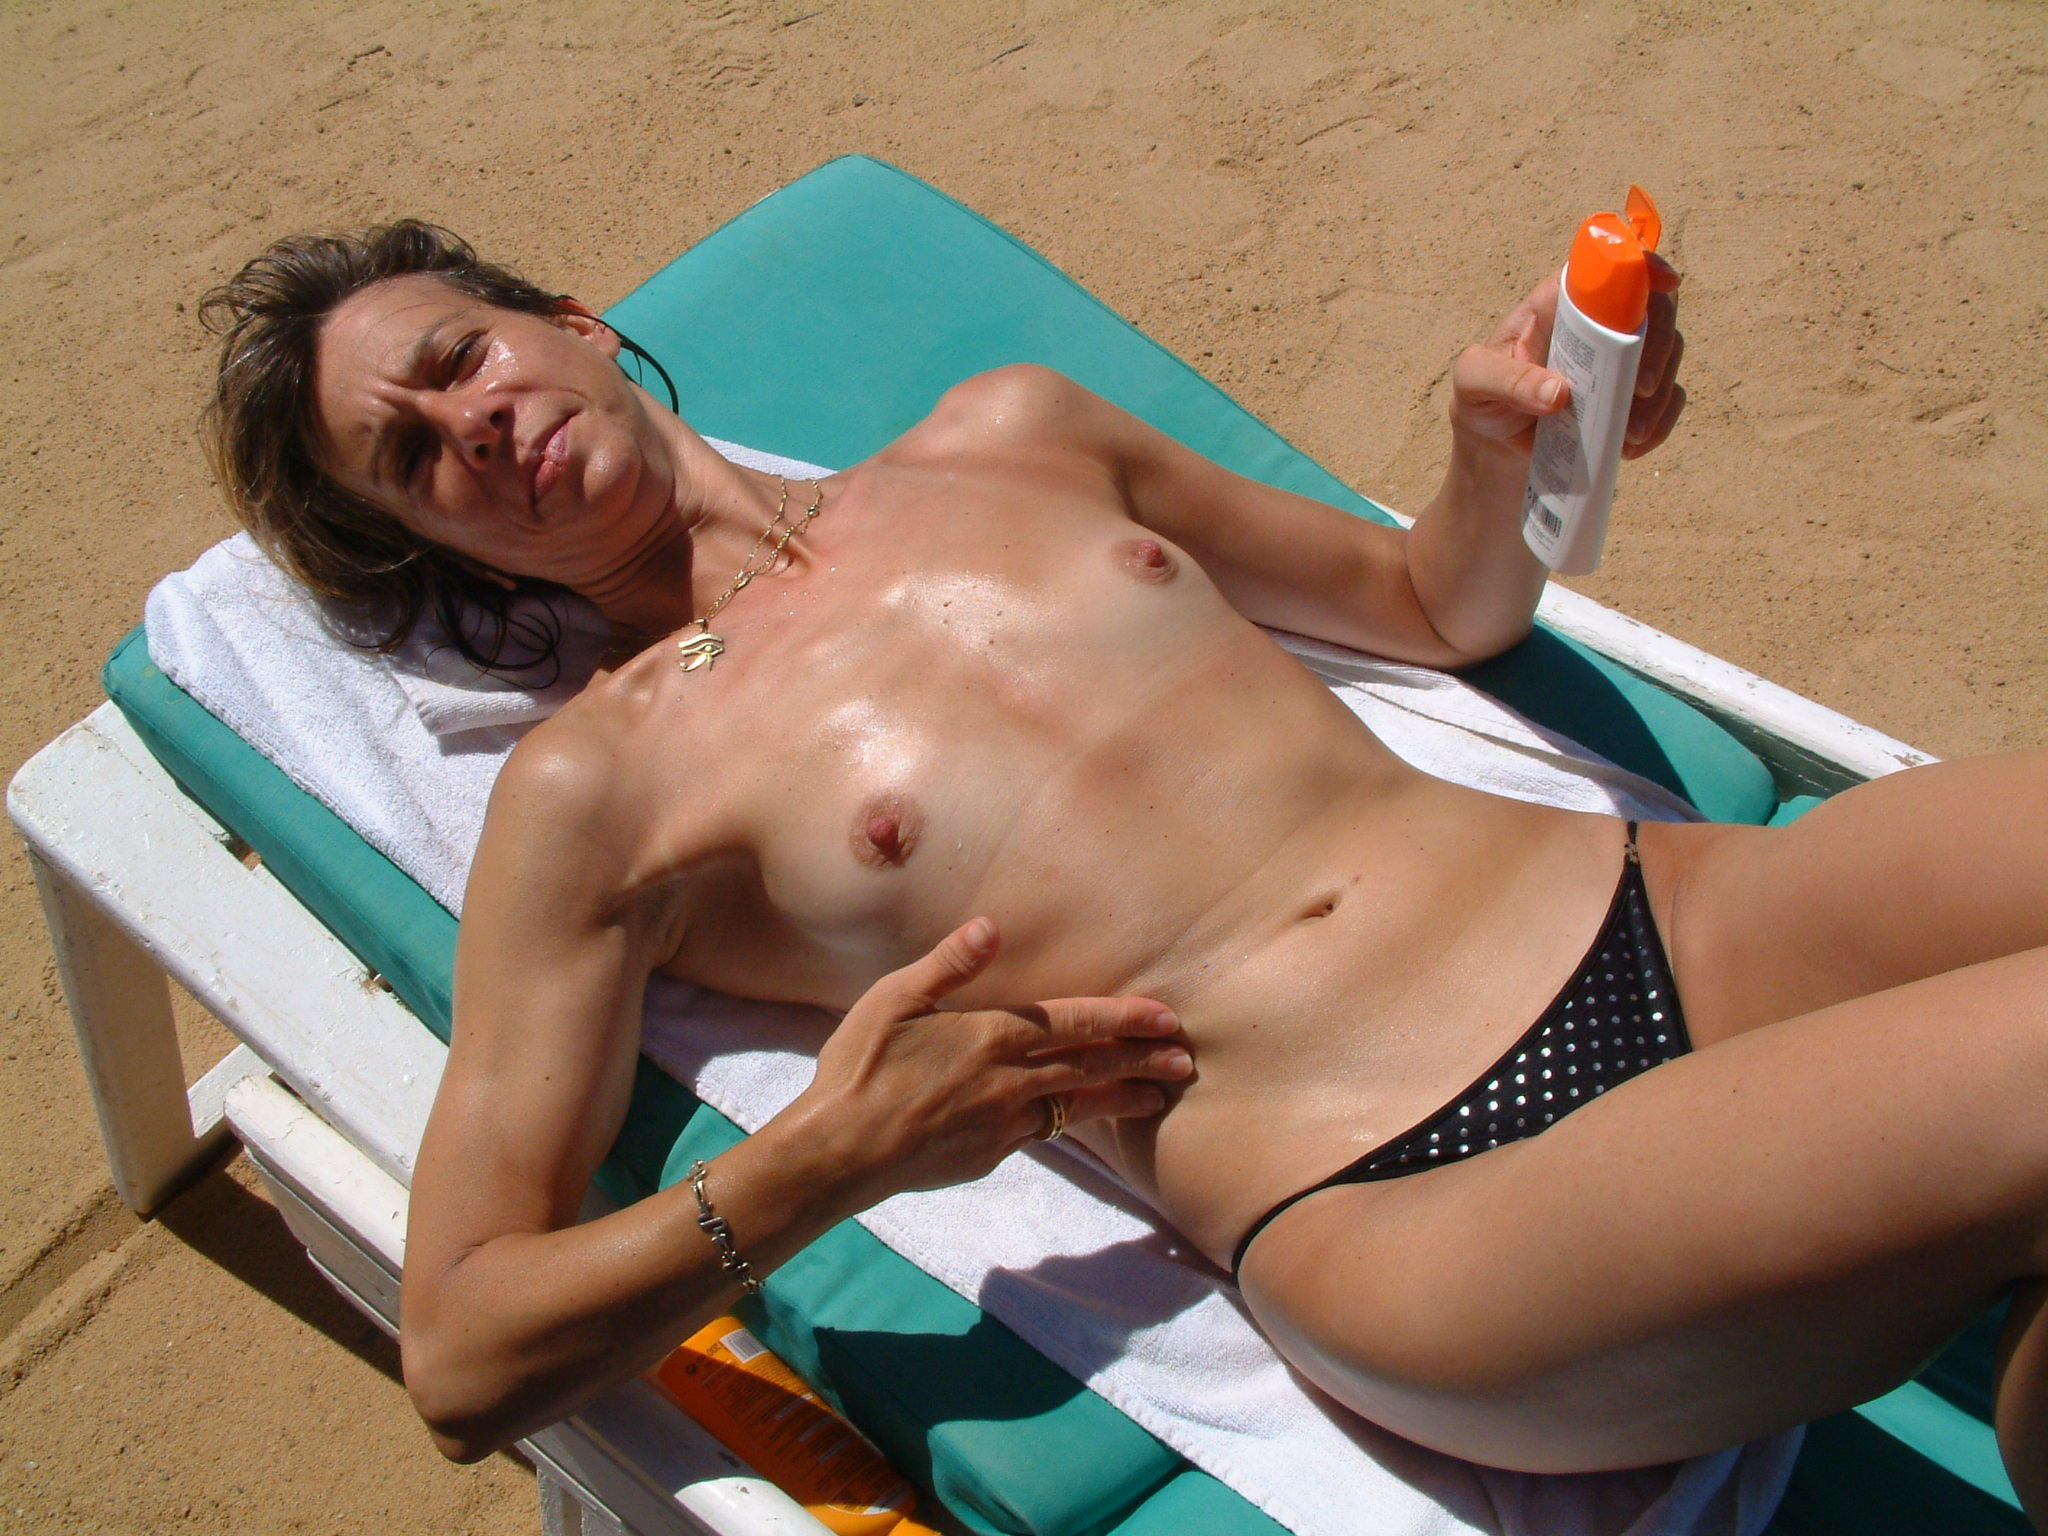 Naughty cougar asking photographer to apply sunscreen on her naked body